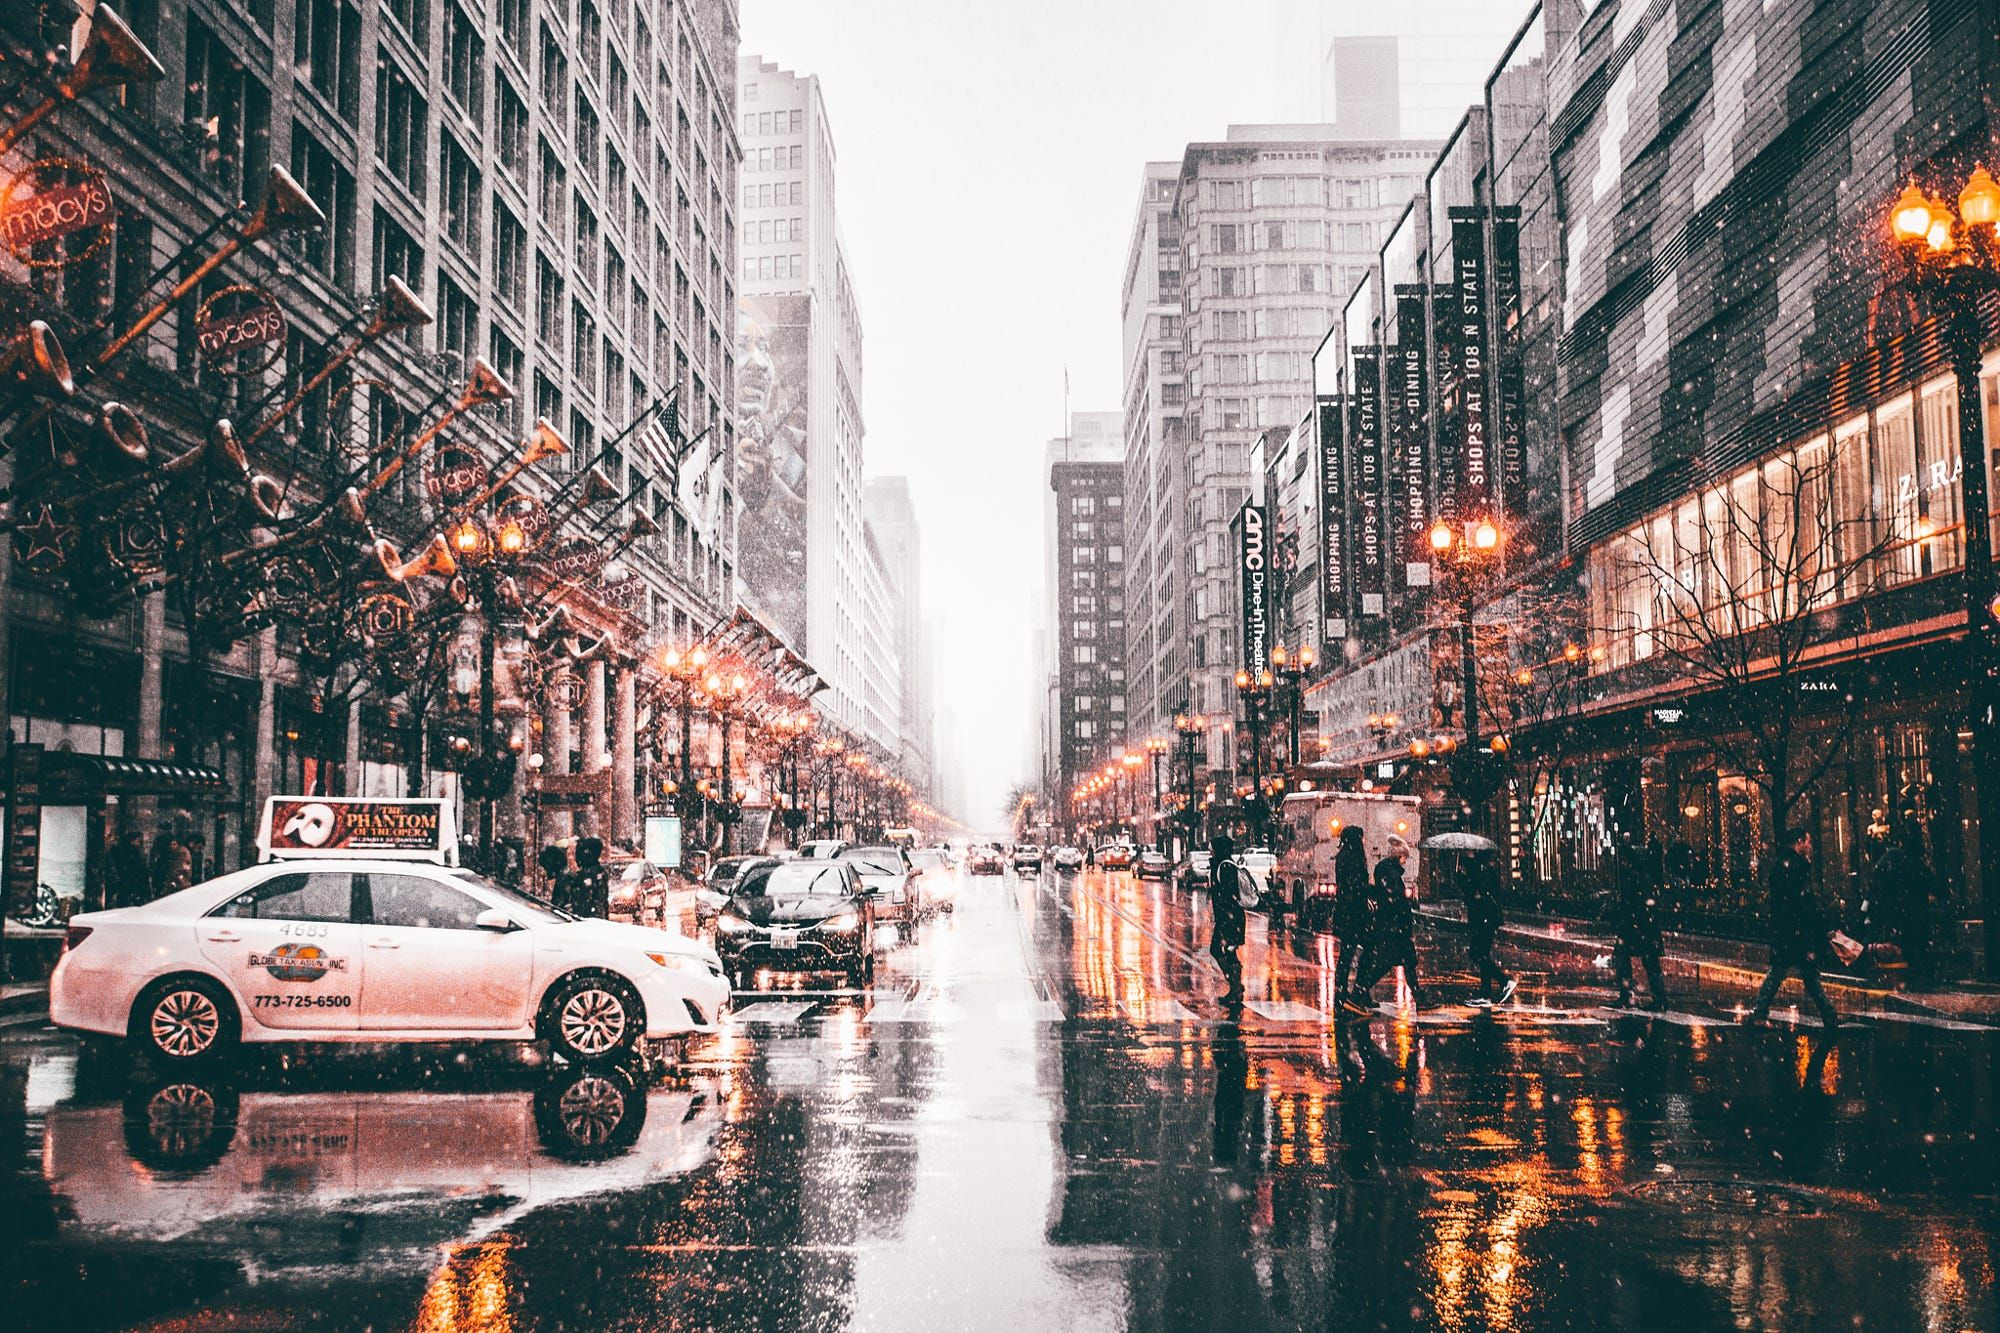 Chicago Weather By Neal Kumar